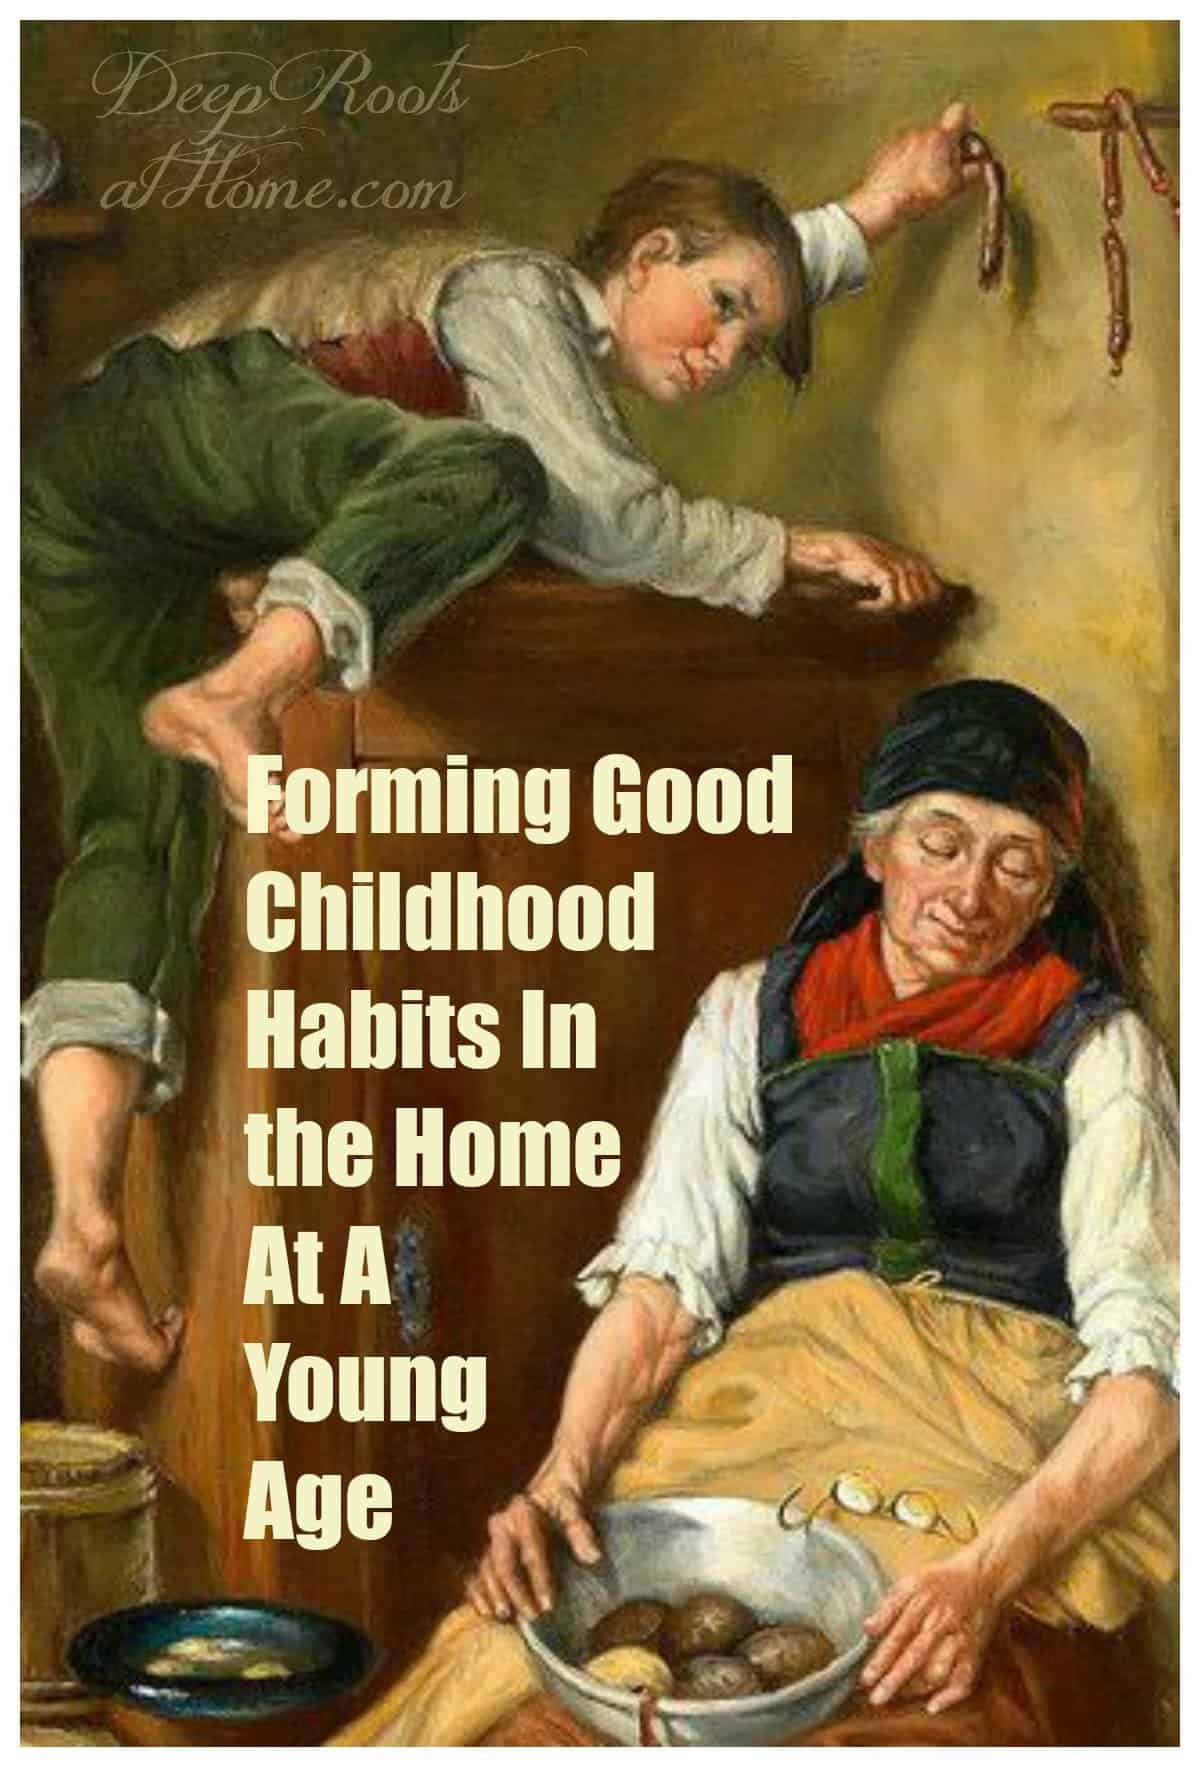 On Forming Good Childhood Habits In the Home At A Young Age. A old woman sleeping and a disrespectful boy climbing on the furniture